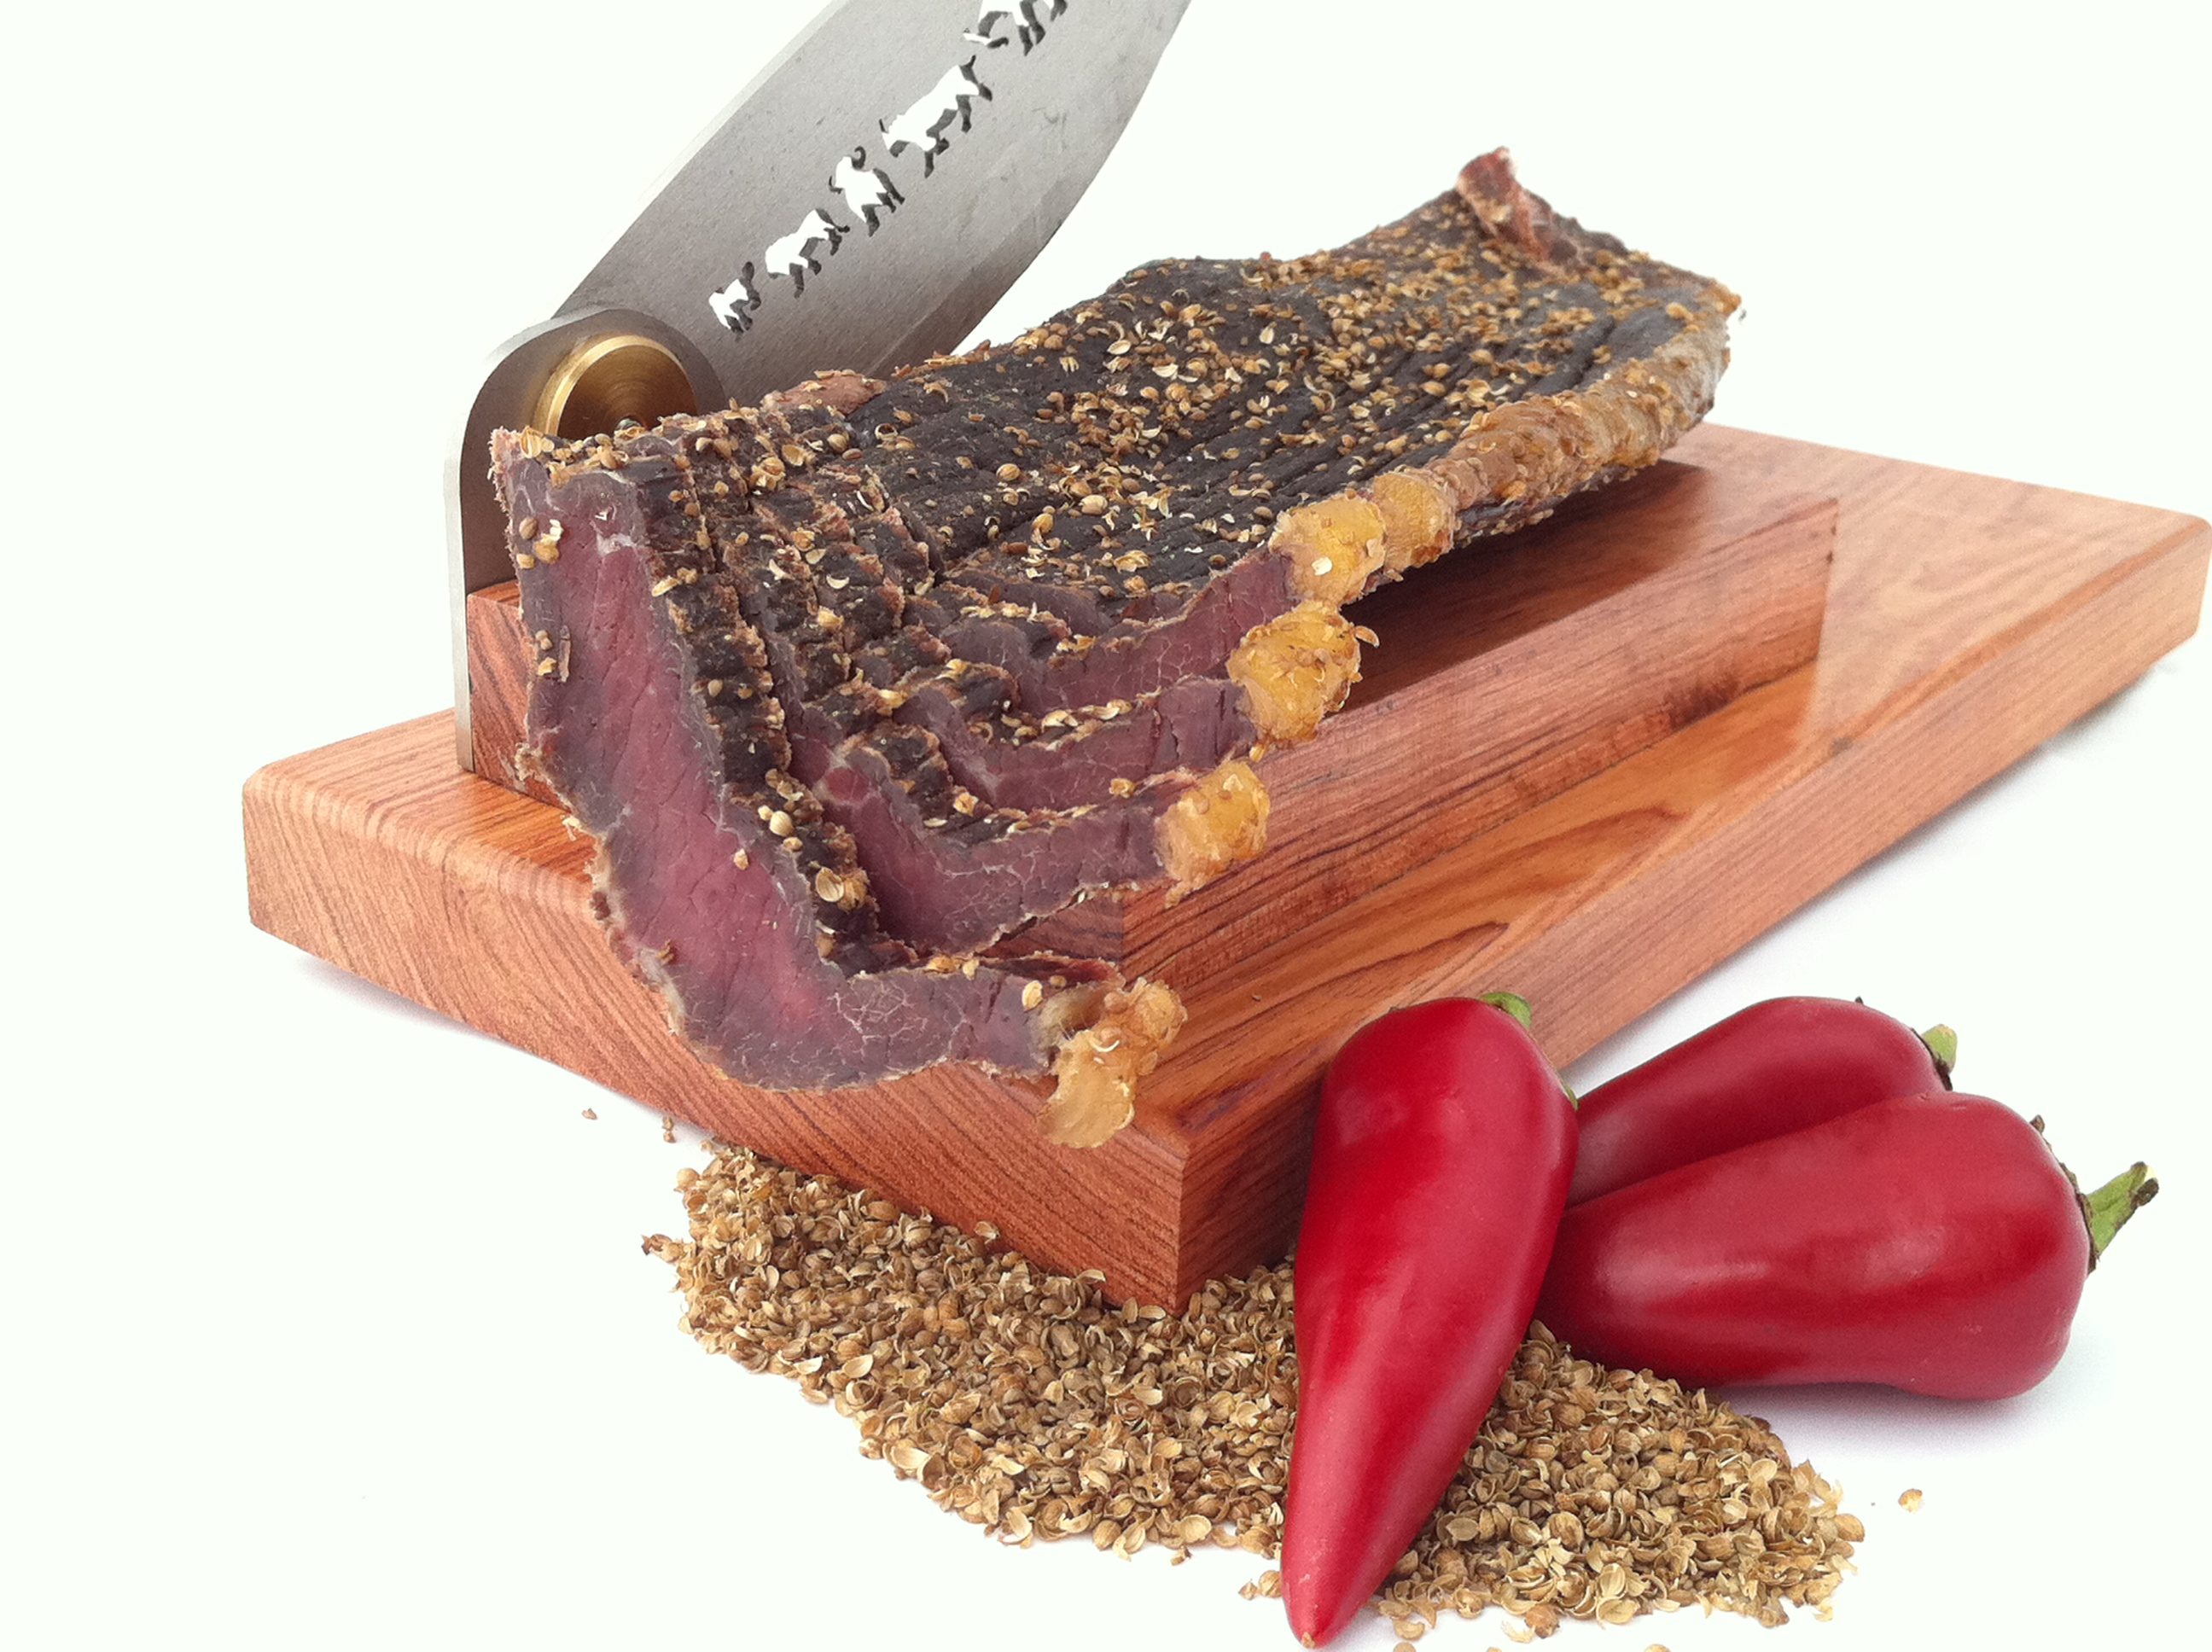 What makes our biltong so good?